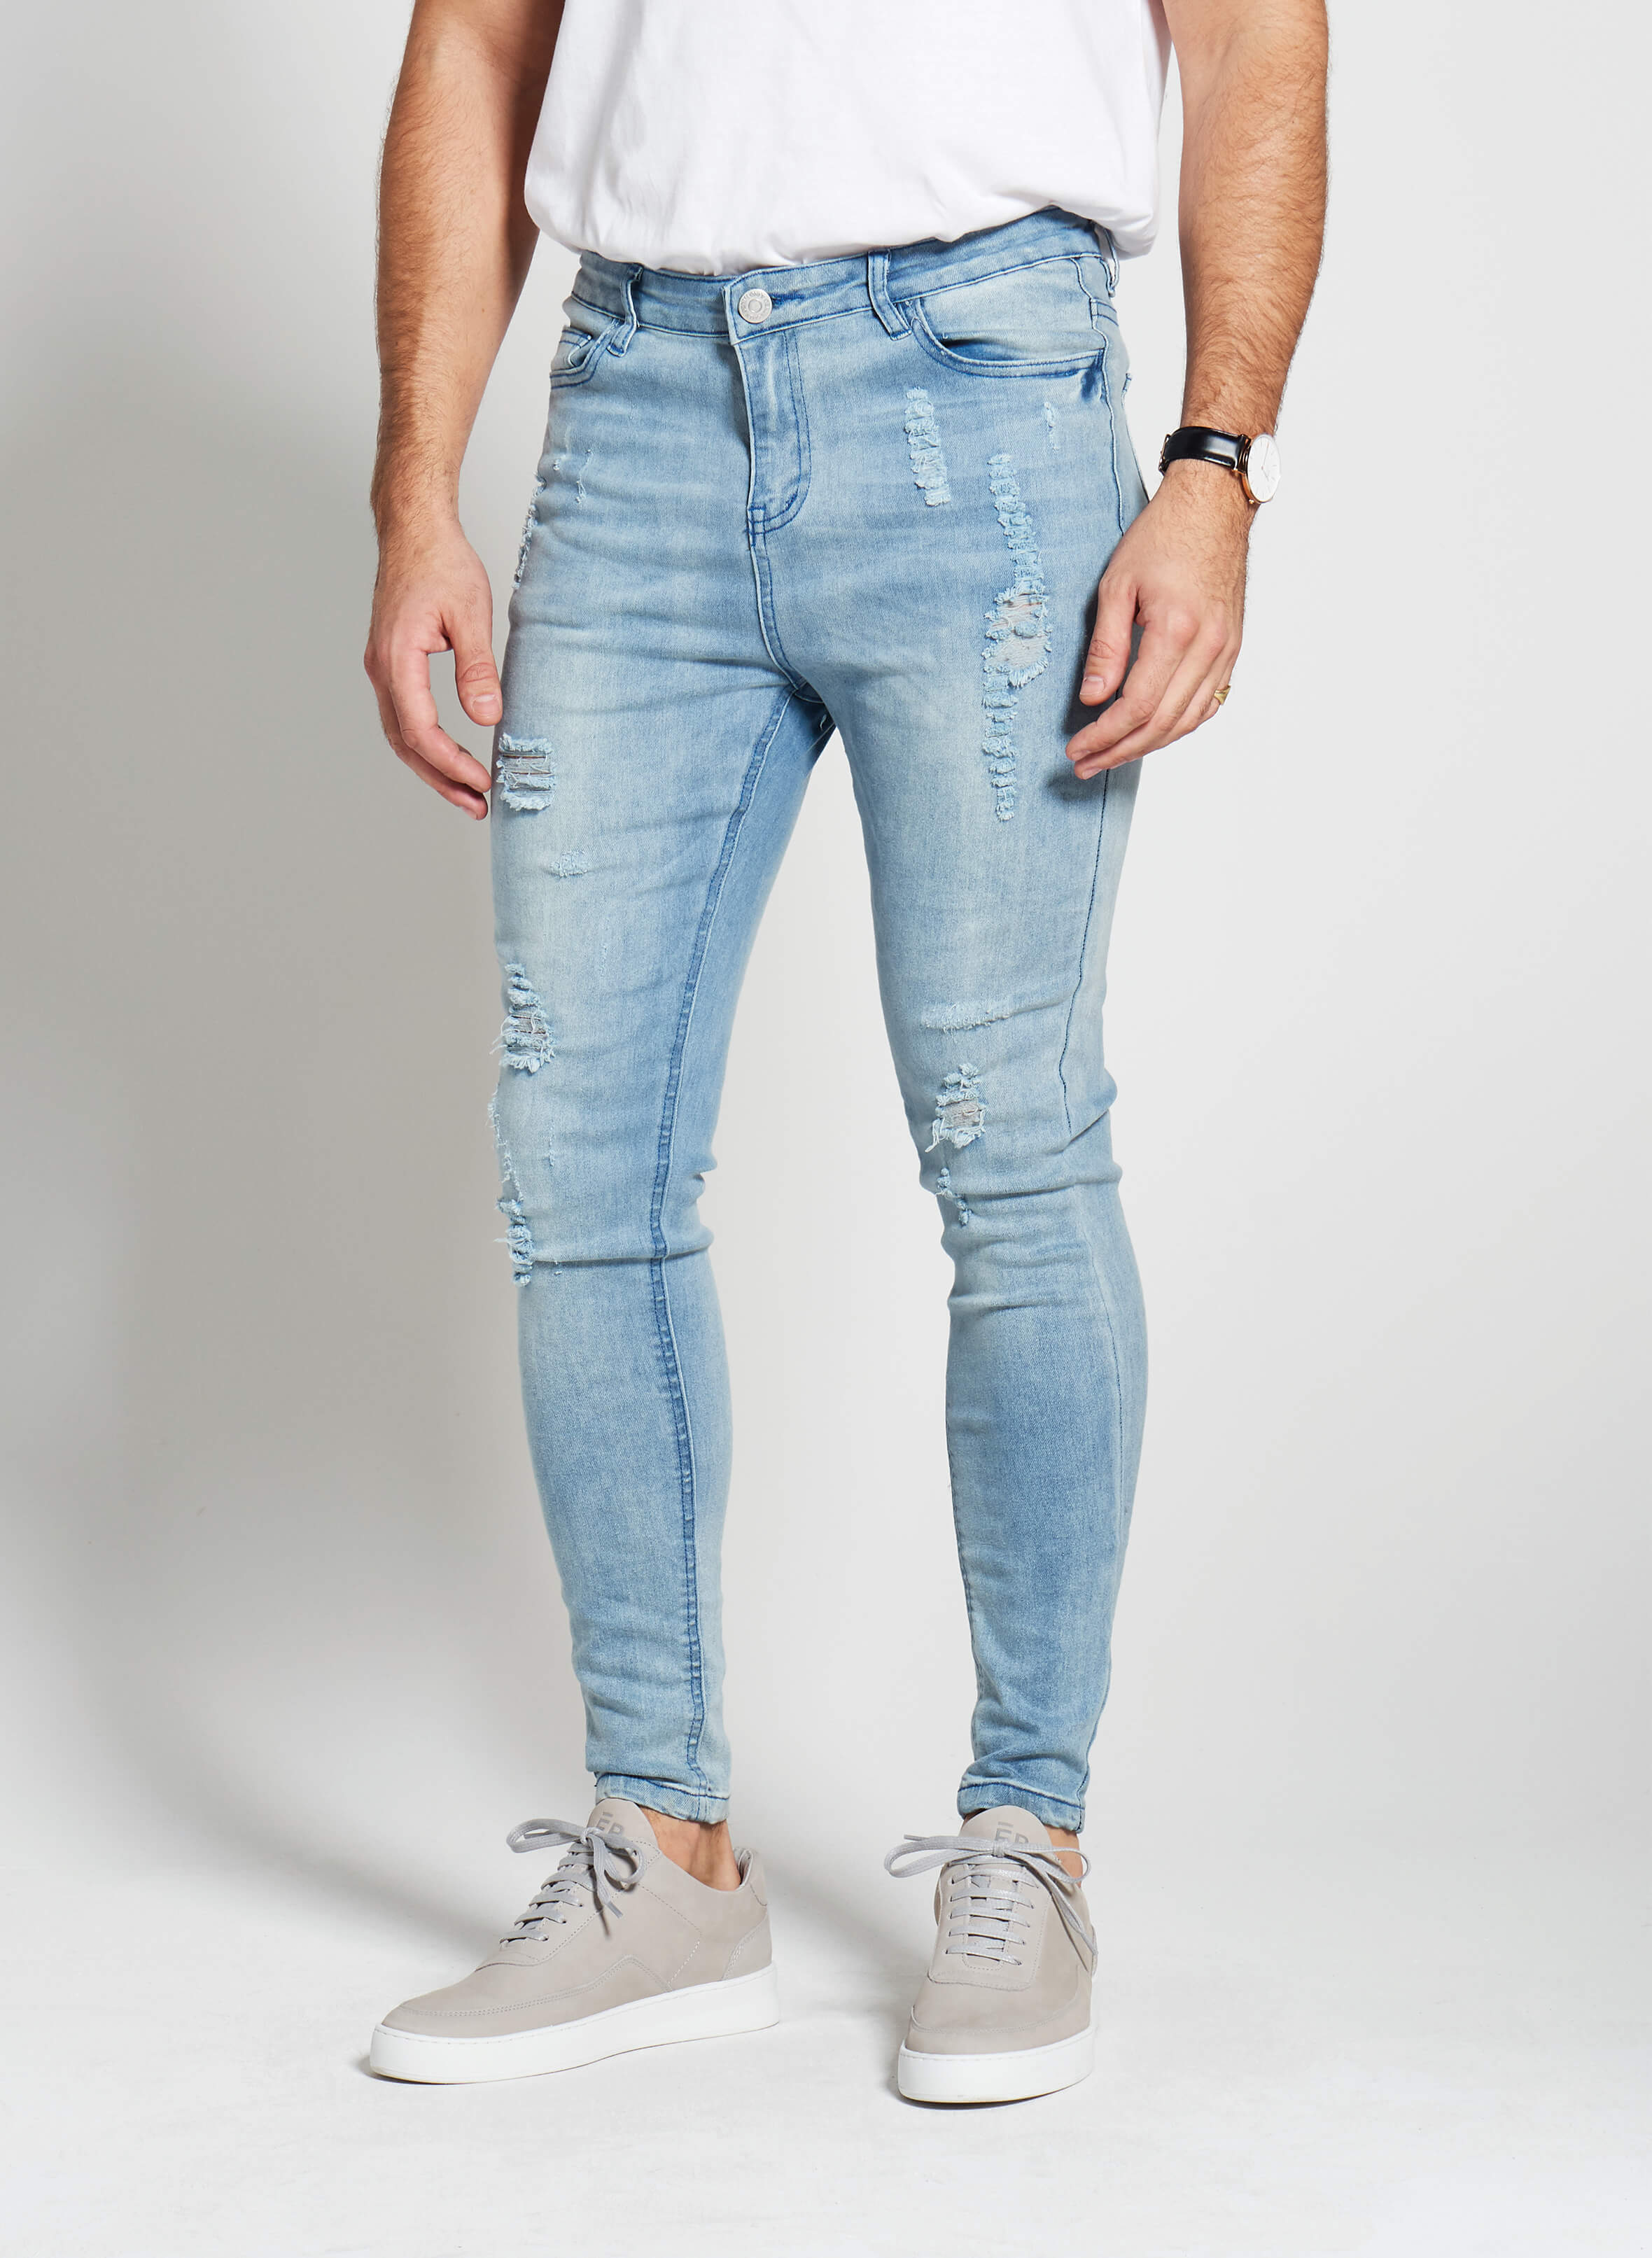 Denim Only® Spray On Jeans - Distressed Light Blue Wash